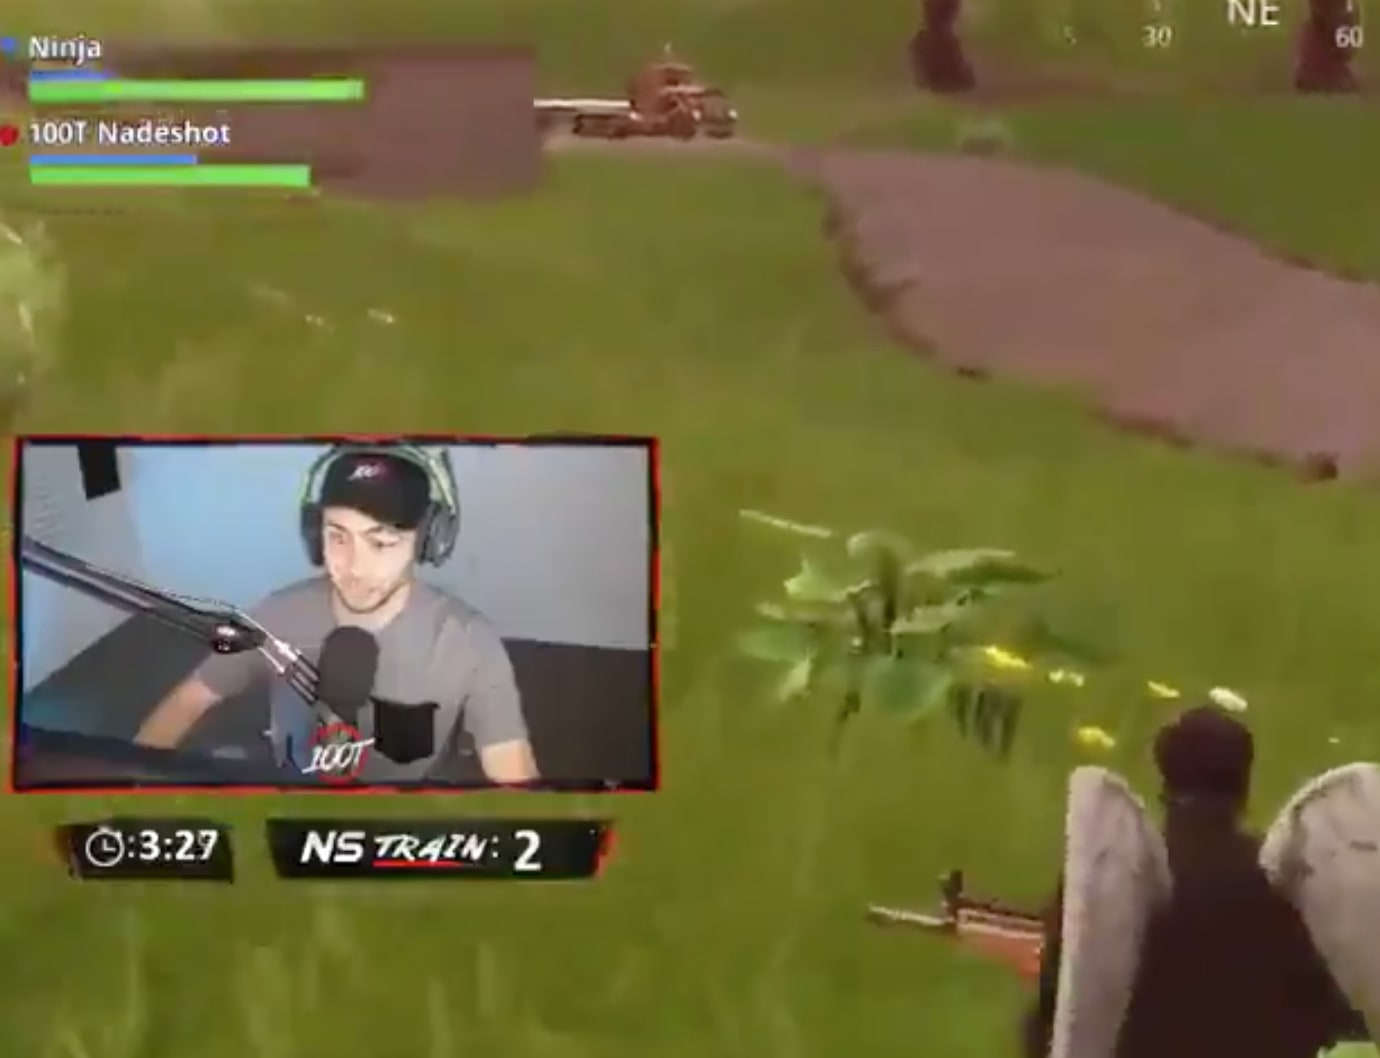 Ninja Faces Backlash After Appearing to Use N-Word During 'Fortnite